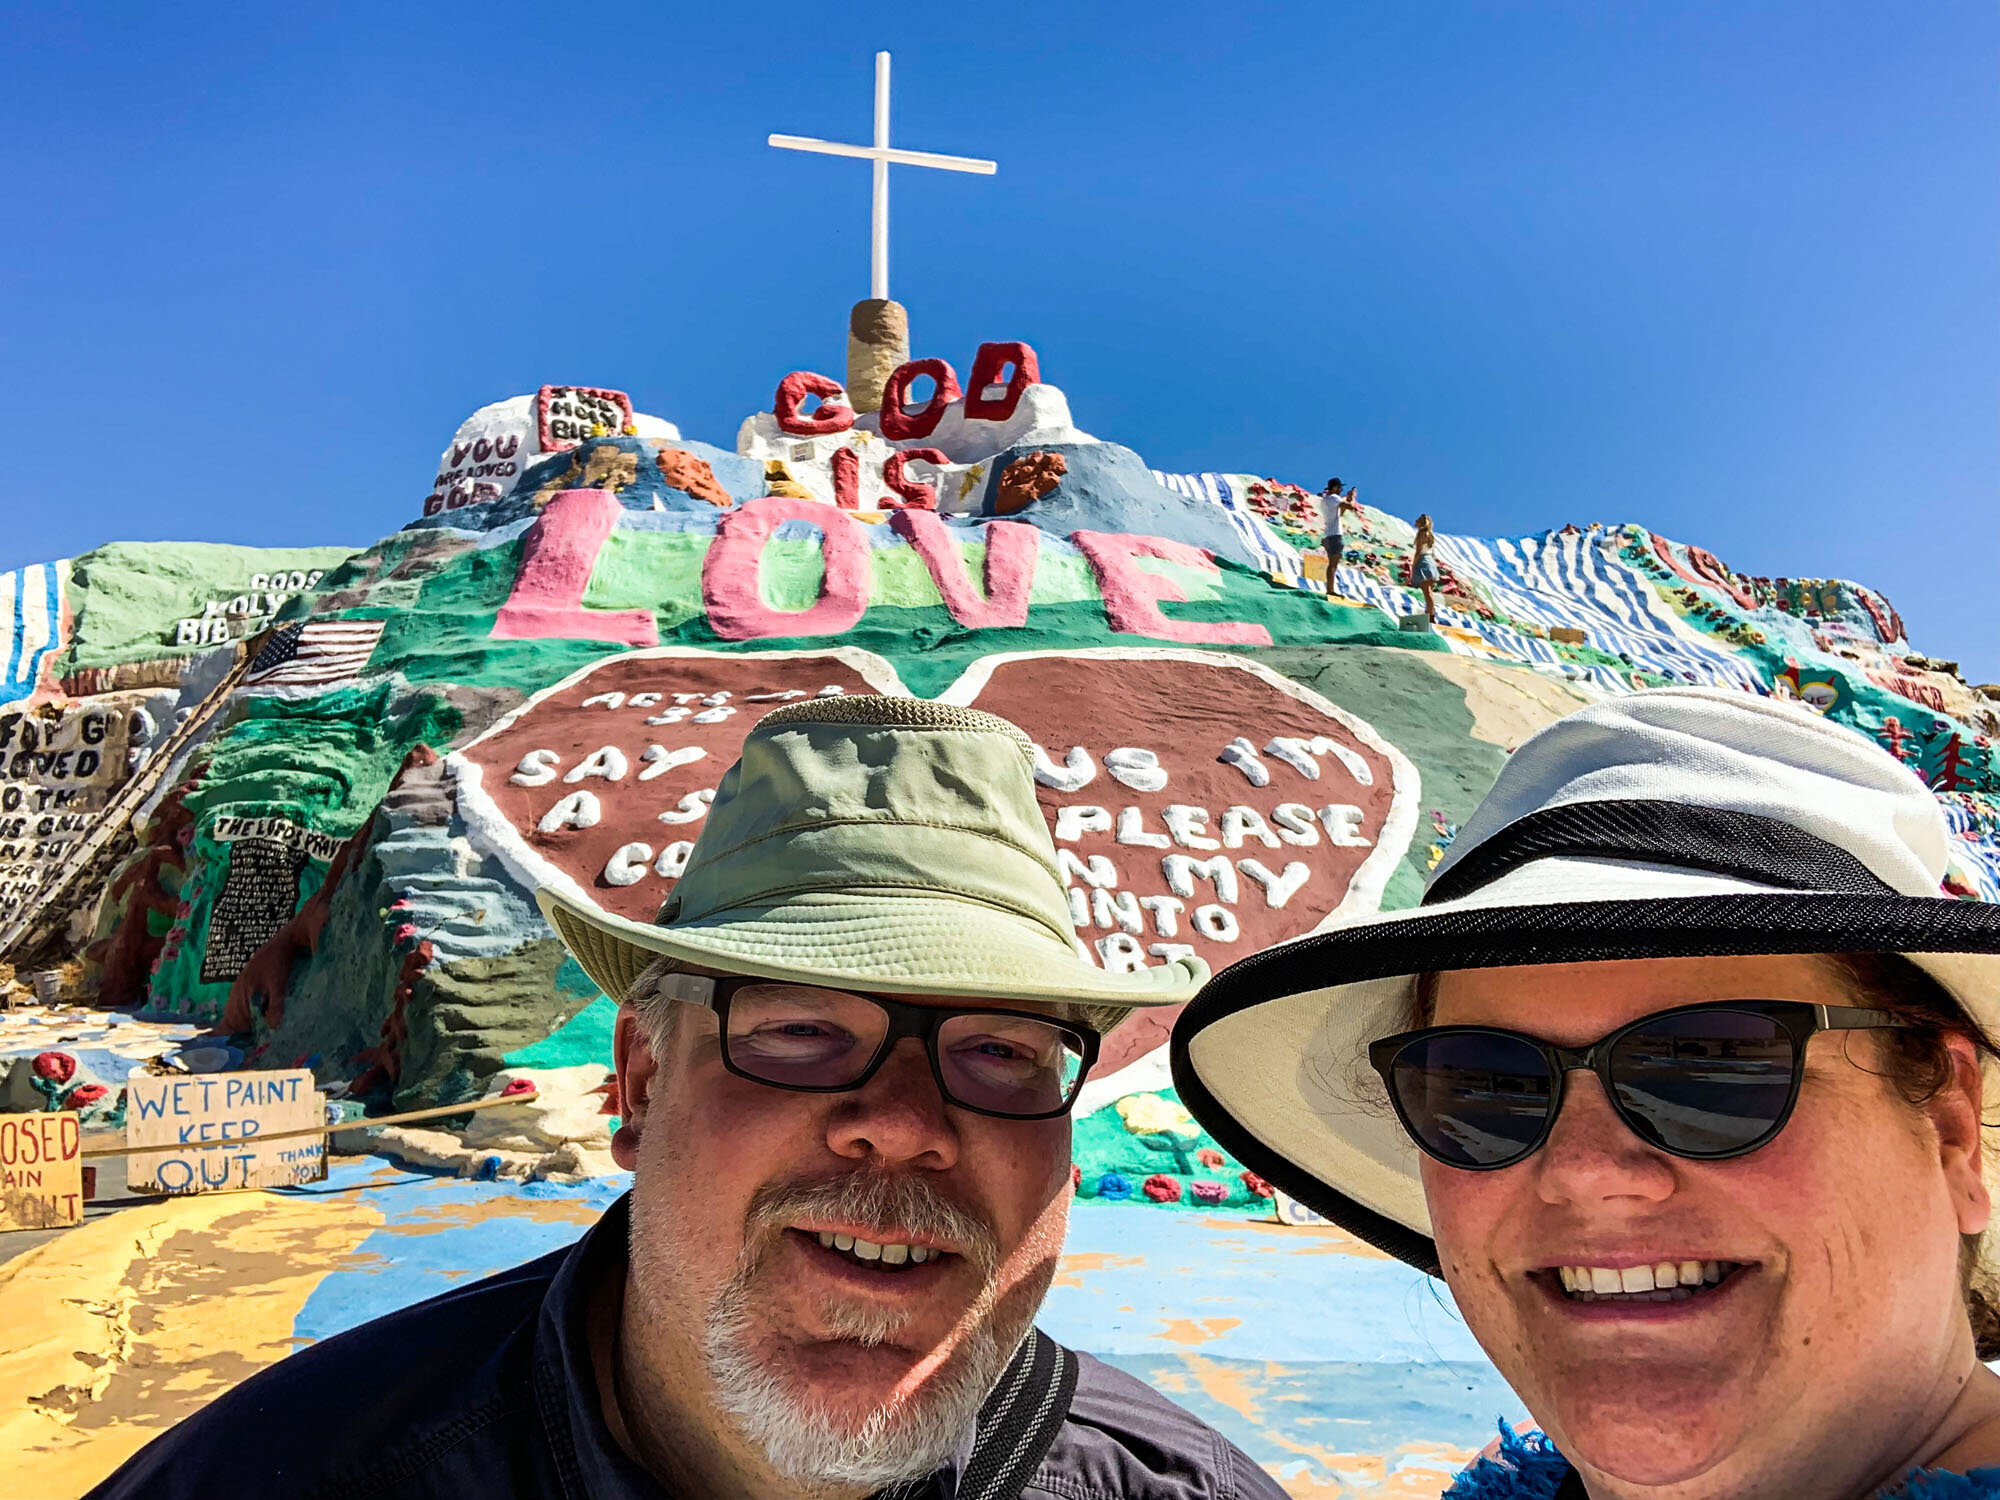 1019_SalvationMountain-2040.jpg